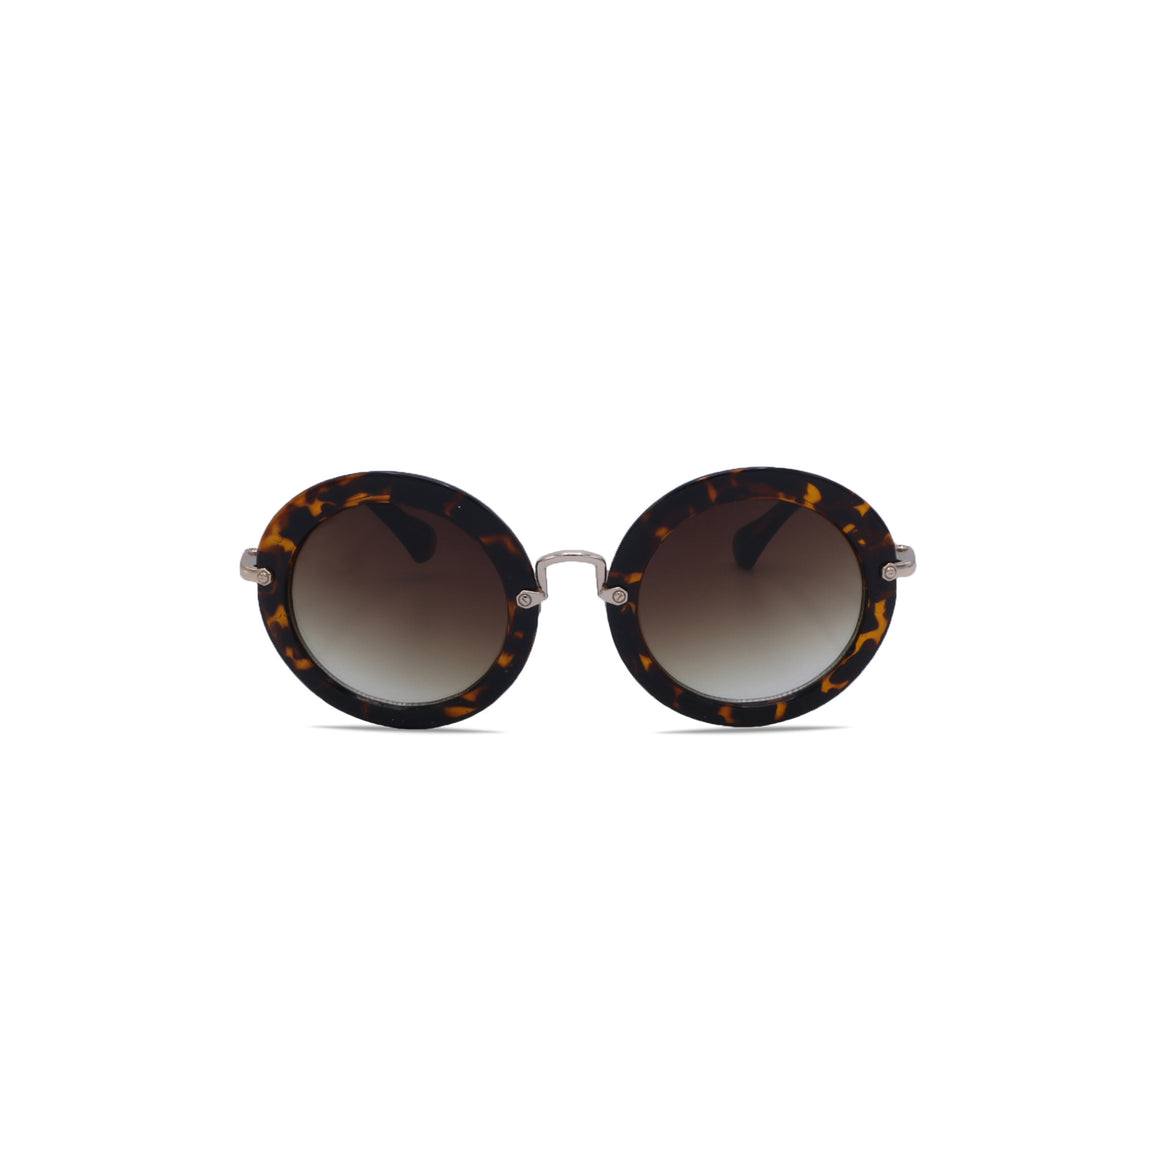 Vintage Sunglasses Retro Round in Leopard Brown Color